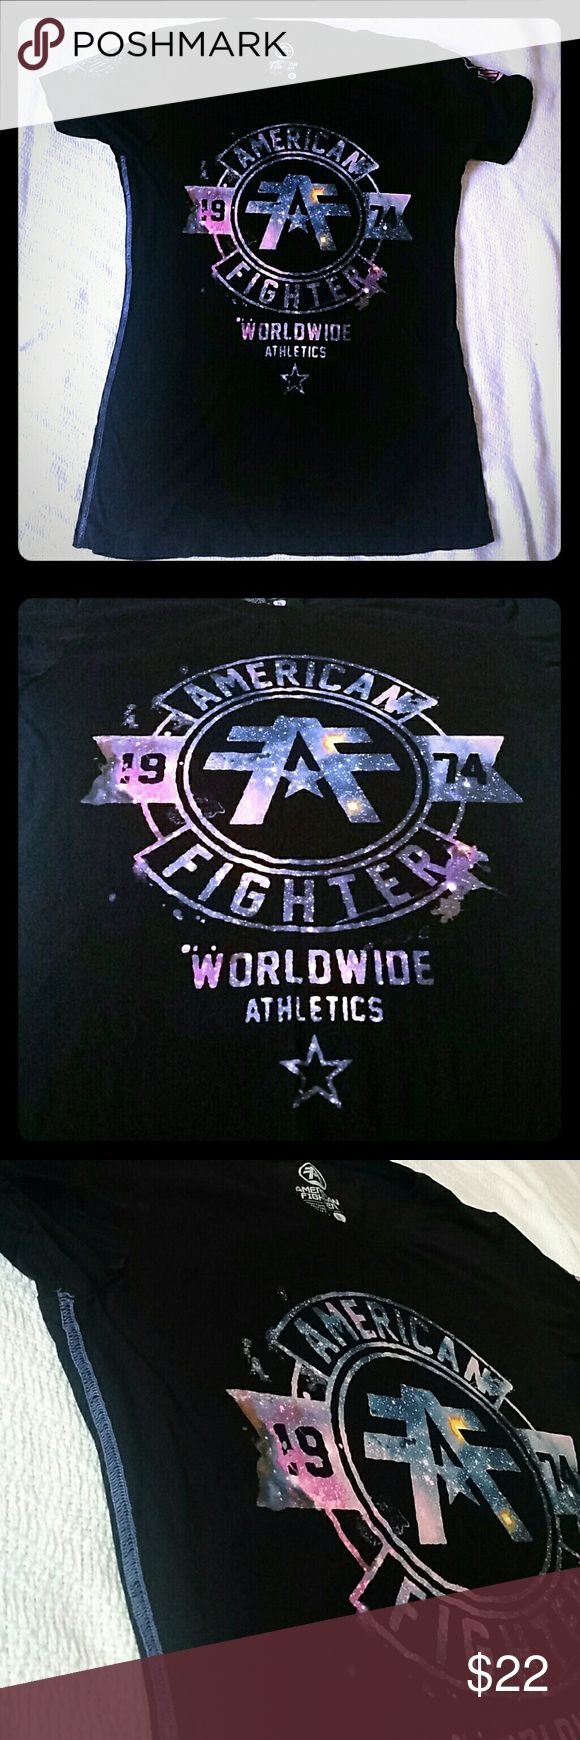 BUCKLE XL American Fighter Black Galaxy T- Shirt Women's American Fighter Tee Size XL Designed exclusively for BUCKLE. Black with galaxy/ space styled logo. Excellent condition! From a smoke-free and pet-free home. American Fighter Tops Tees - Short Sleeve